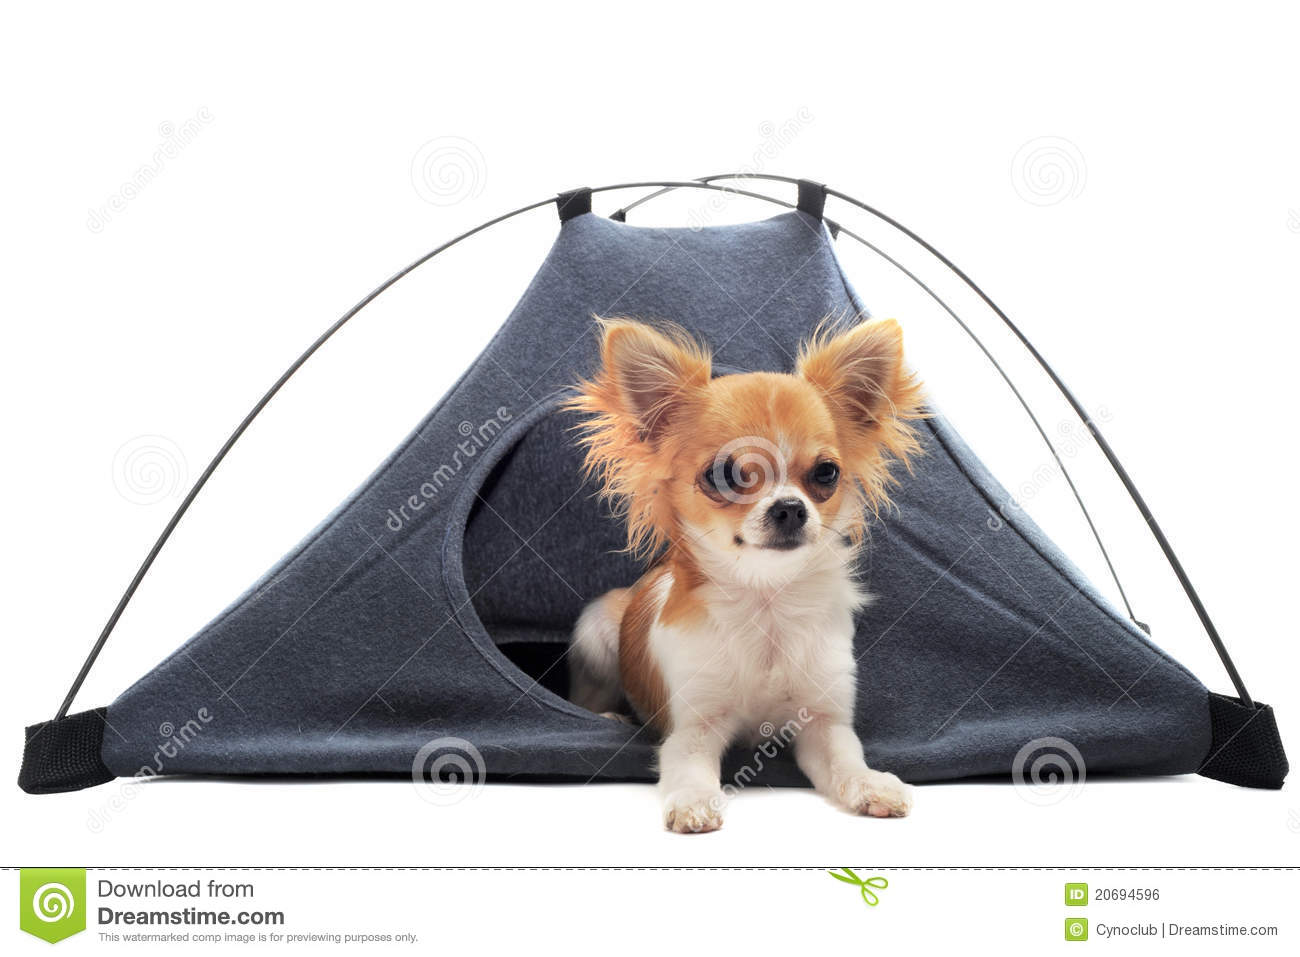 Puppy Chihuahua In Camp Tent Stock Photo - Image of puppy, animal